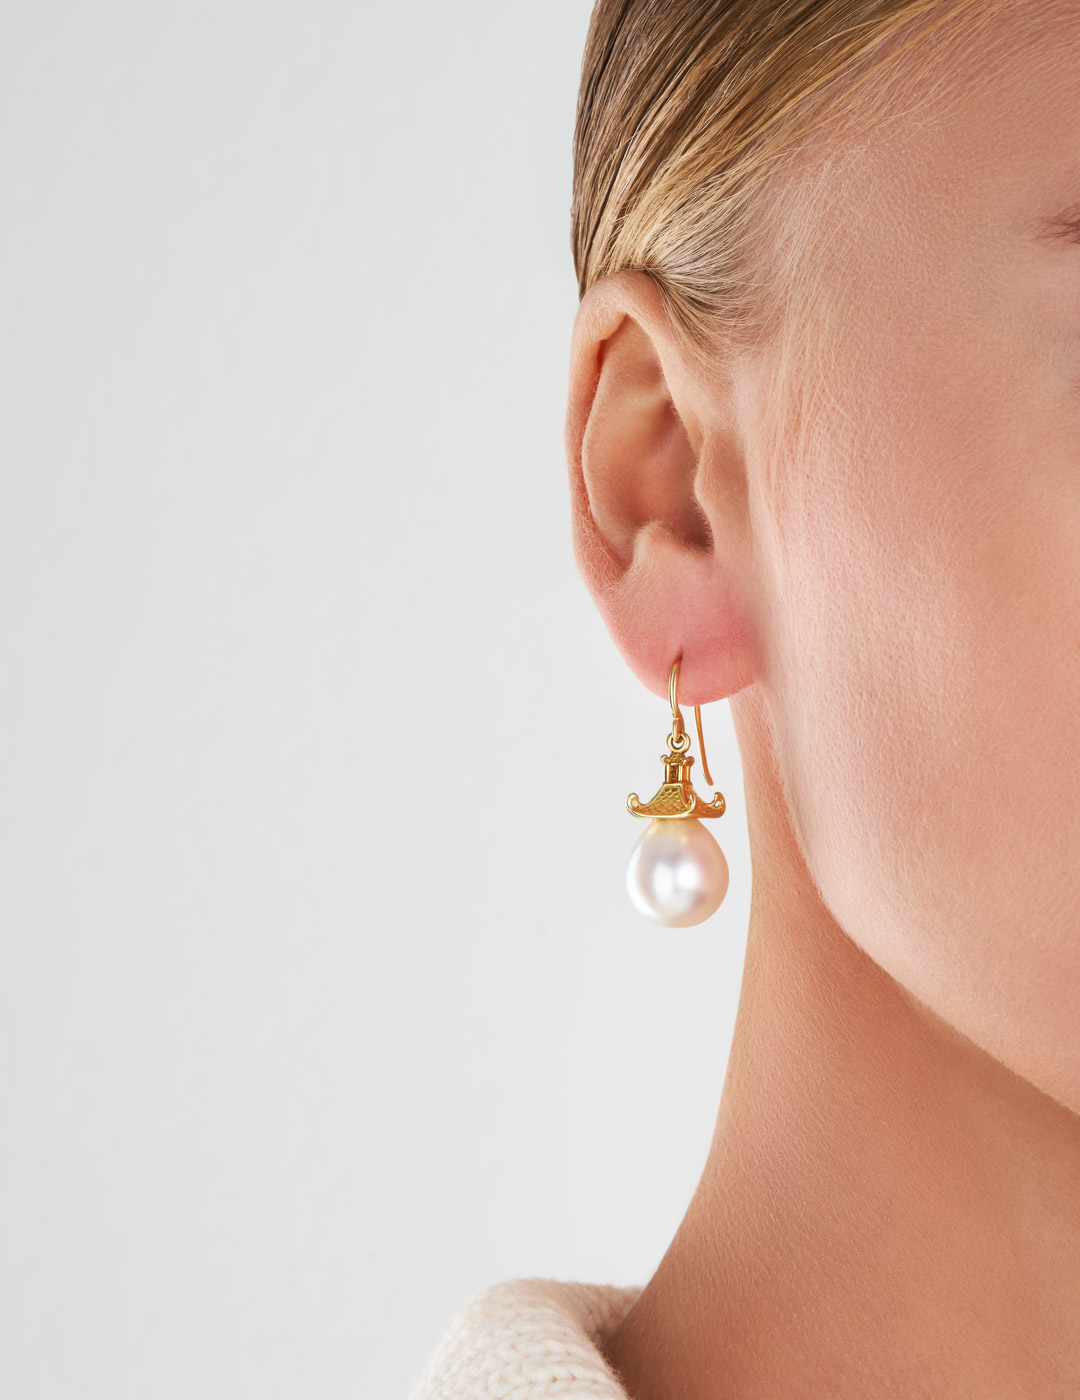 mish_products_earrings_Pagoda-White SS Prl-ER-2